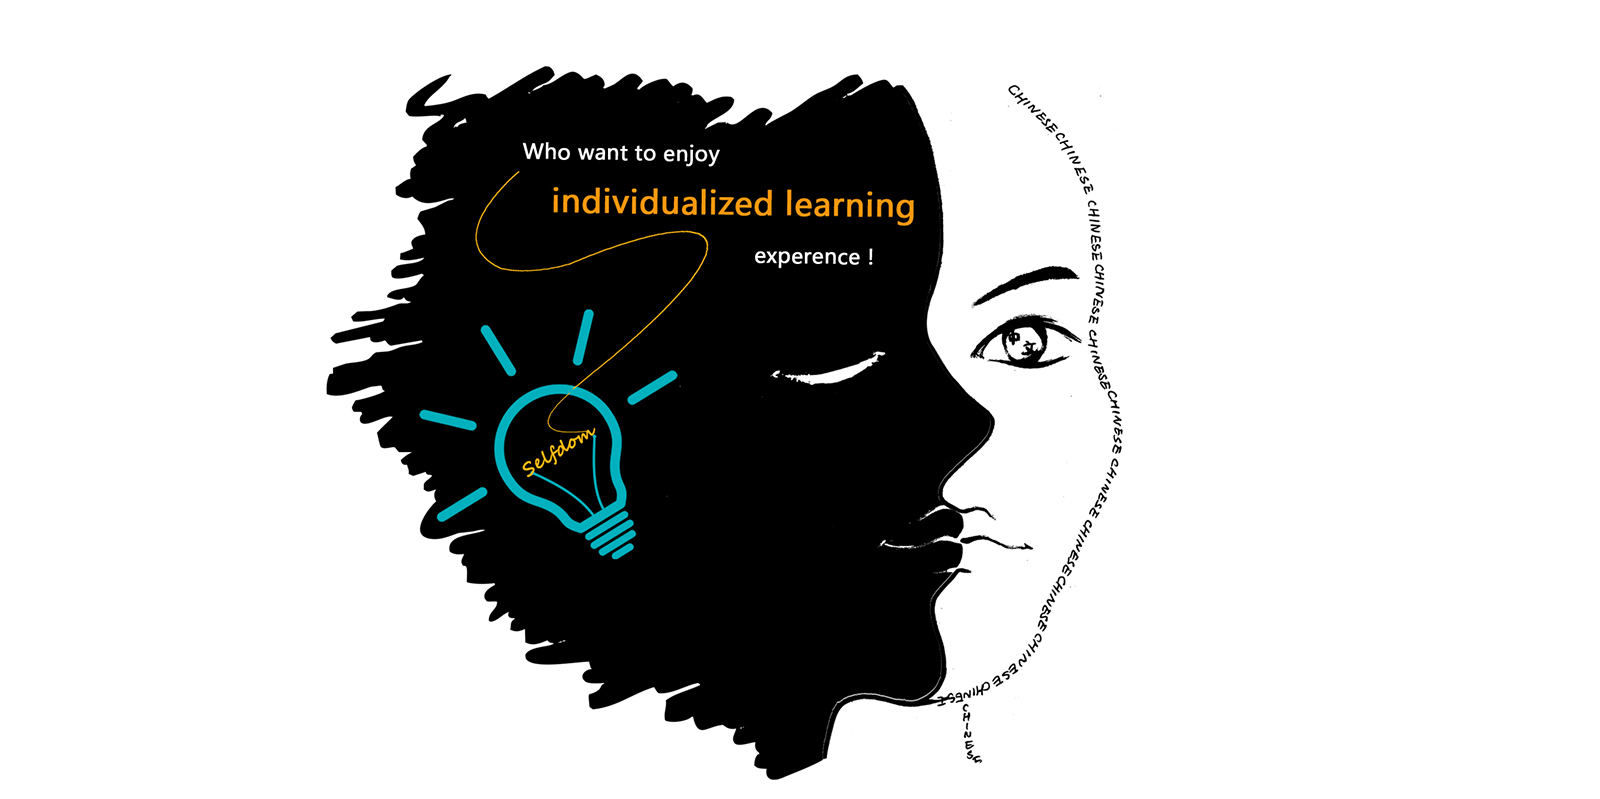 Who want to enjoy individualized learning experience.-小游瓶的画廊